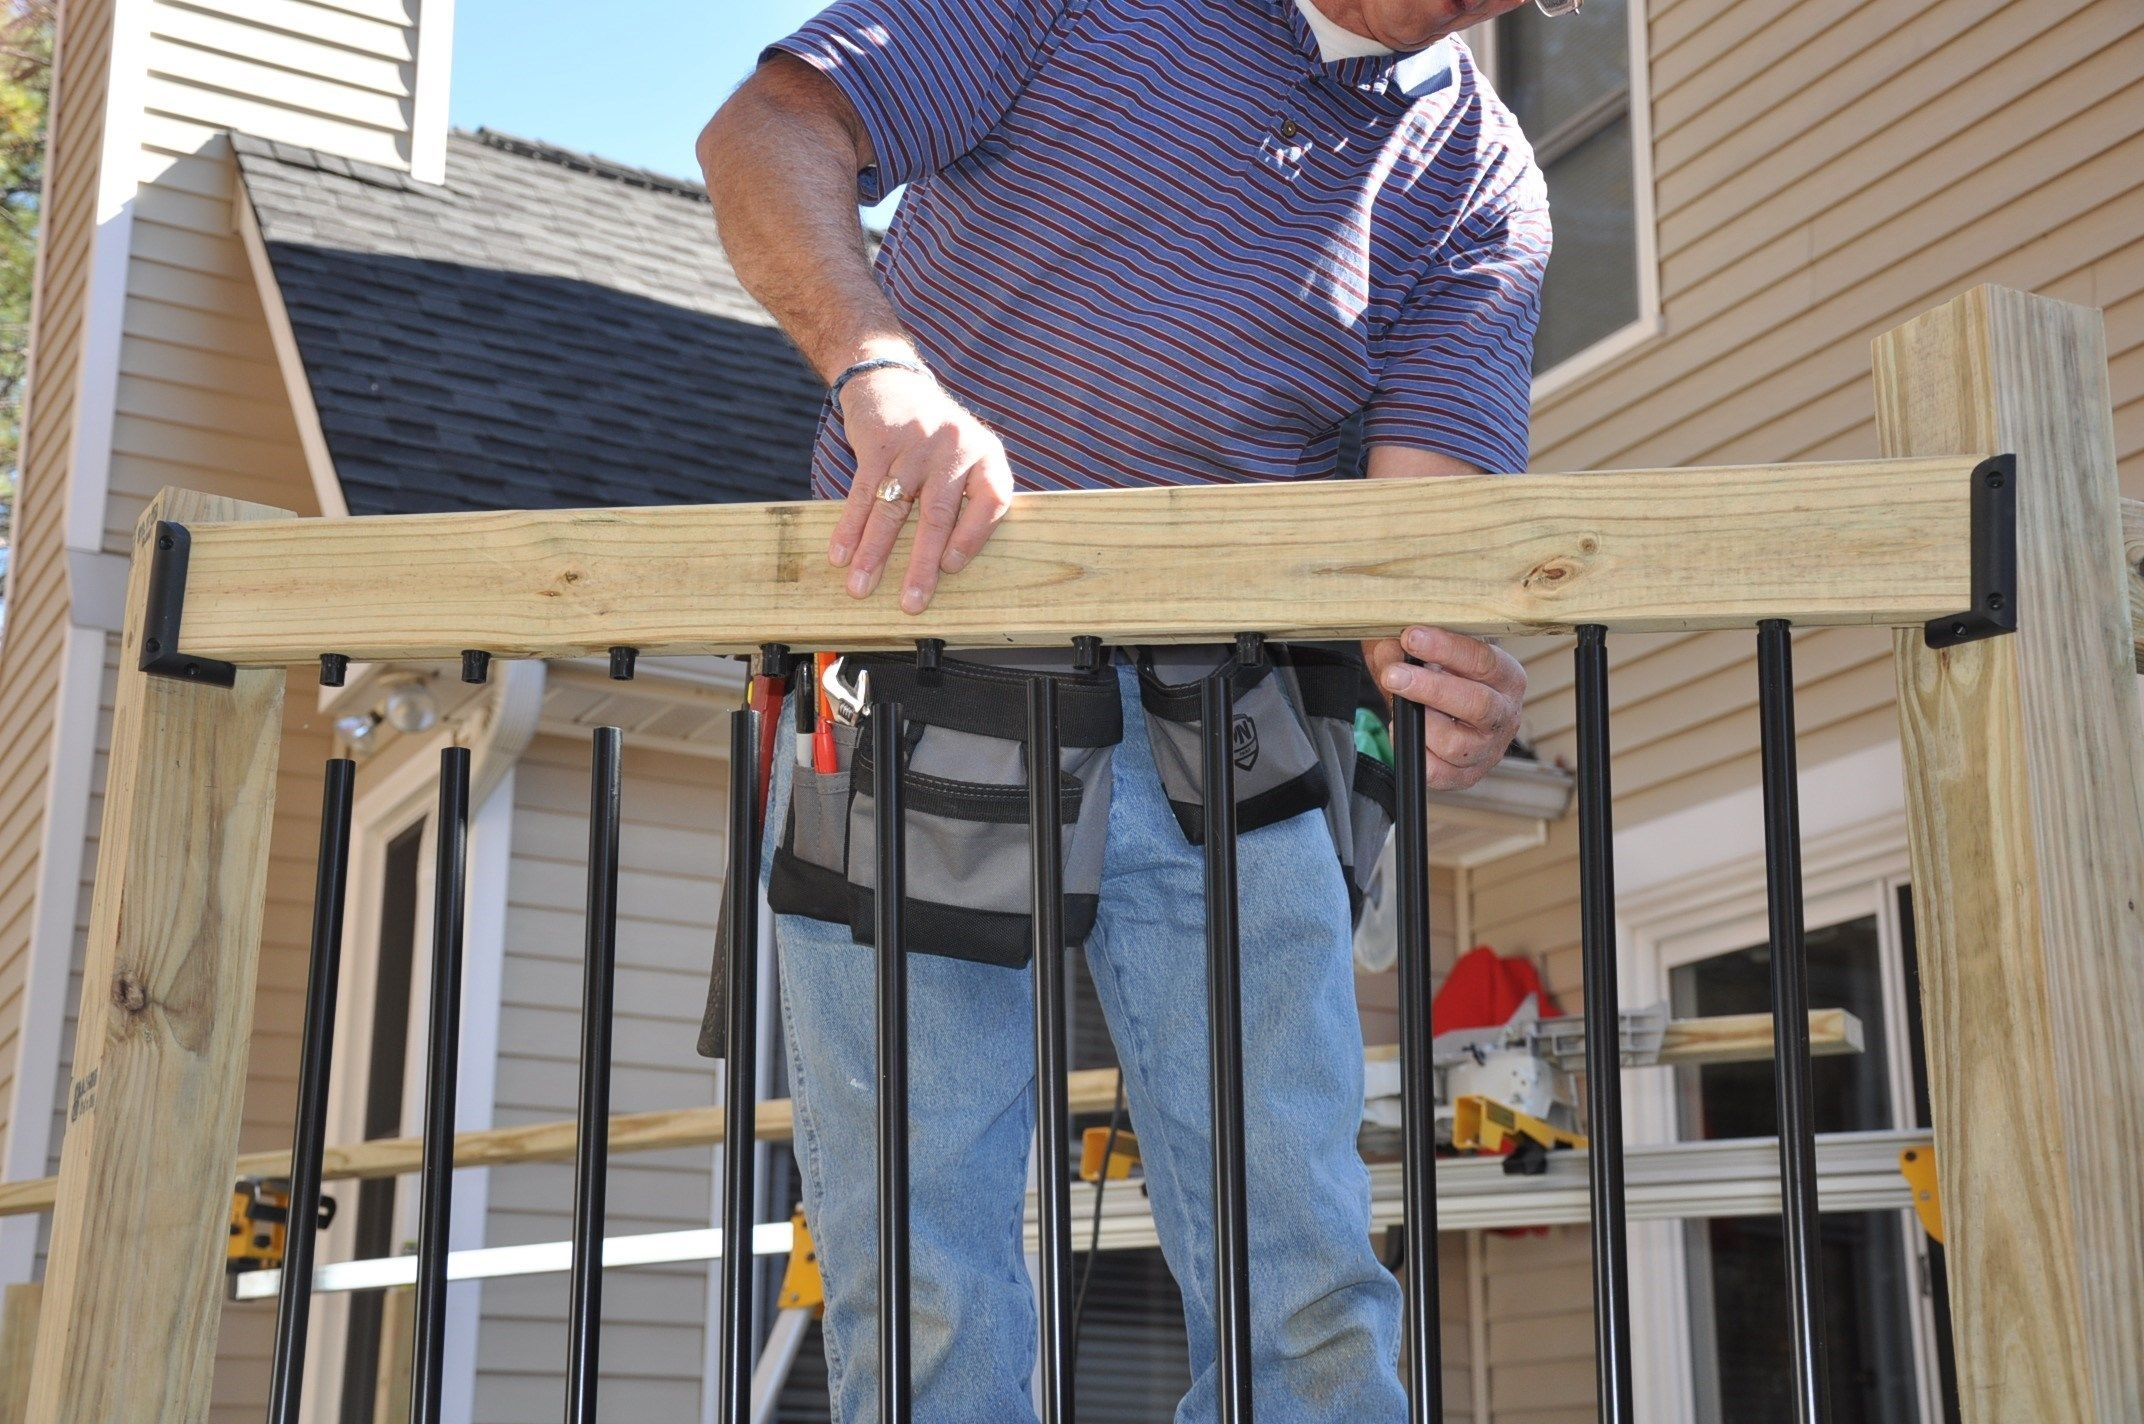 How To Install Deck Rail Balusters Decks Com   Wood Baluster Deck Railing   Temporary   Surface Mount   Pre Built   Side Mounted   Hardwood